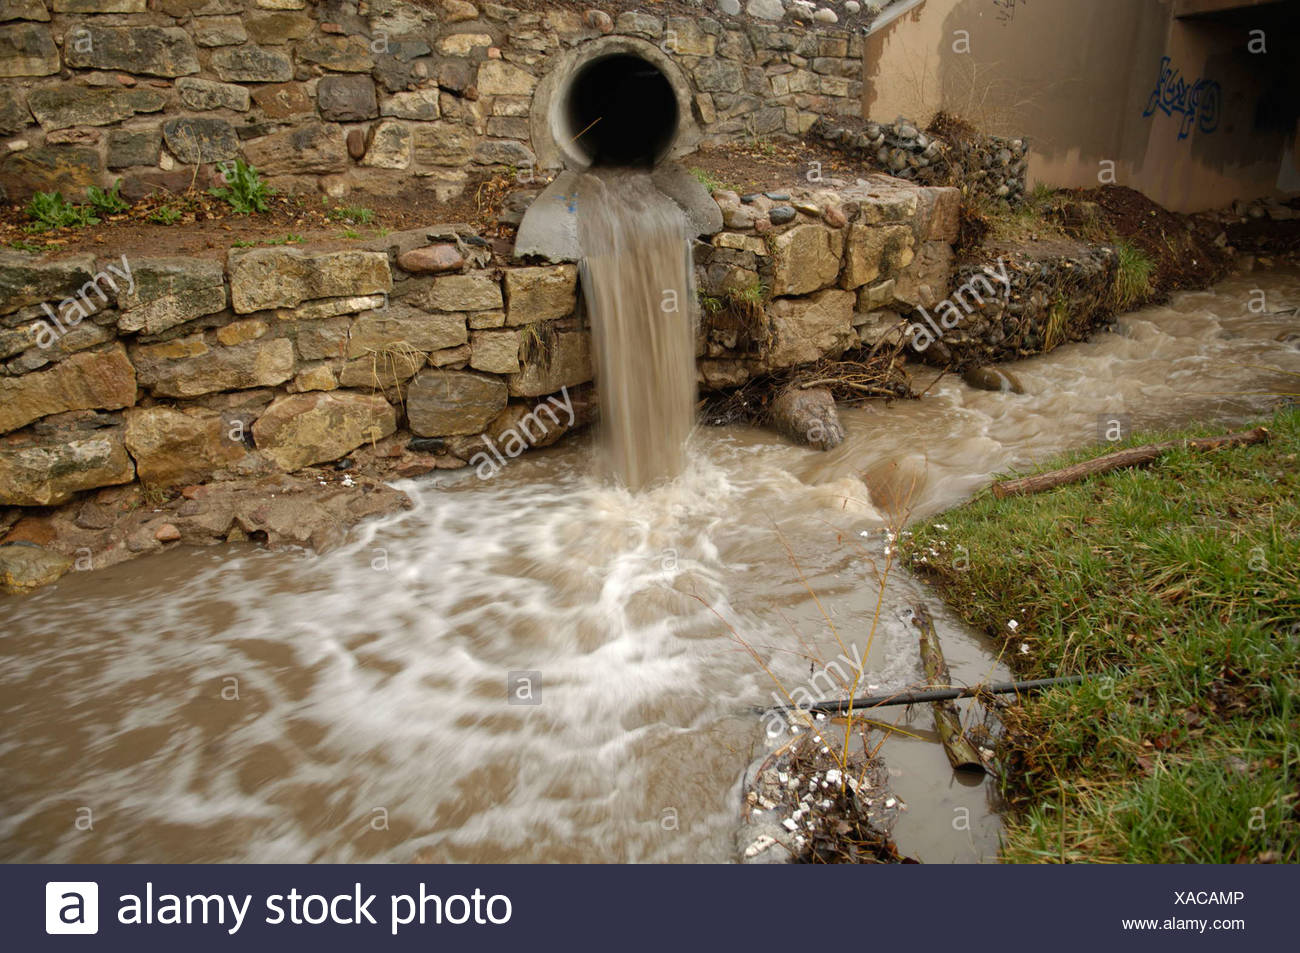 Storm sewer water rushes into a stream near the Santa Fe's downtown. - Stock Image